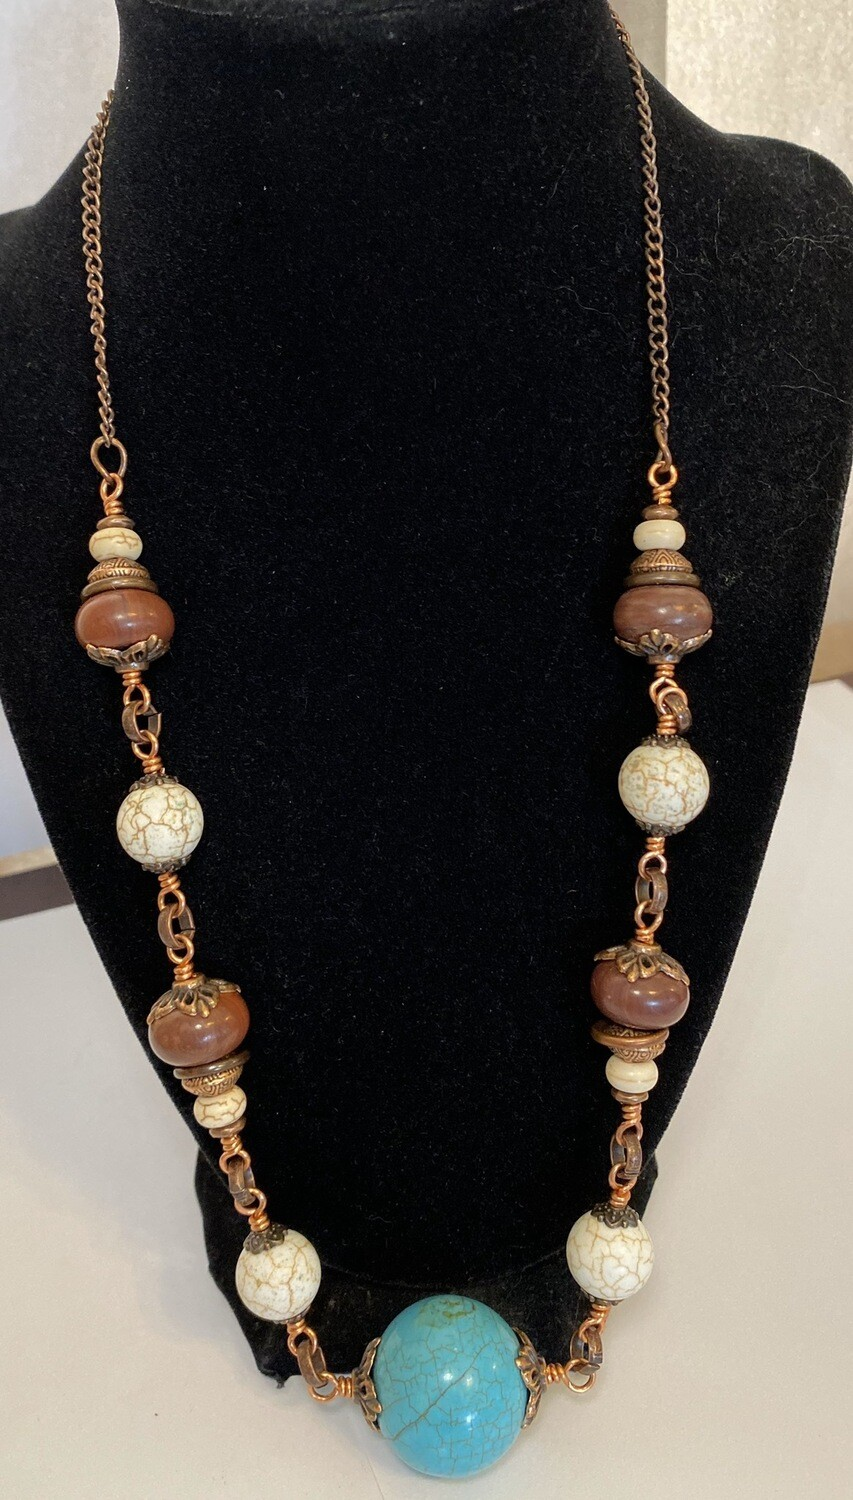 DK Elements White Howlite Tourqouise Sphere, Jasper And Copper Necklace Local, Handmade